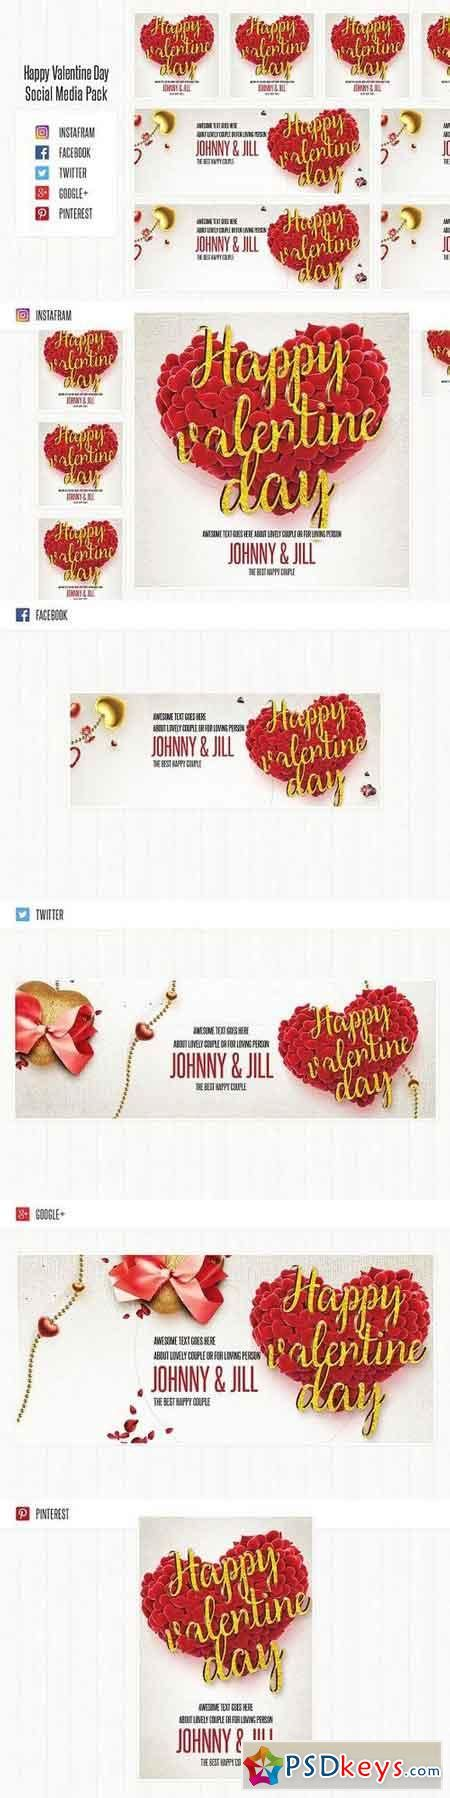 valentines day torrent s day social media pack 1106380 187 free